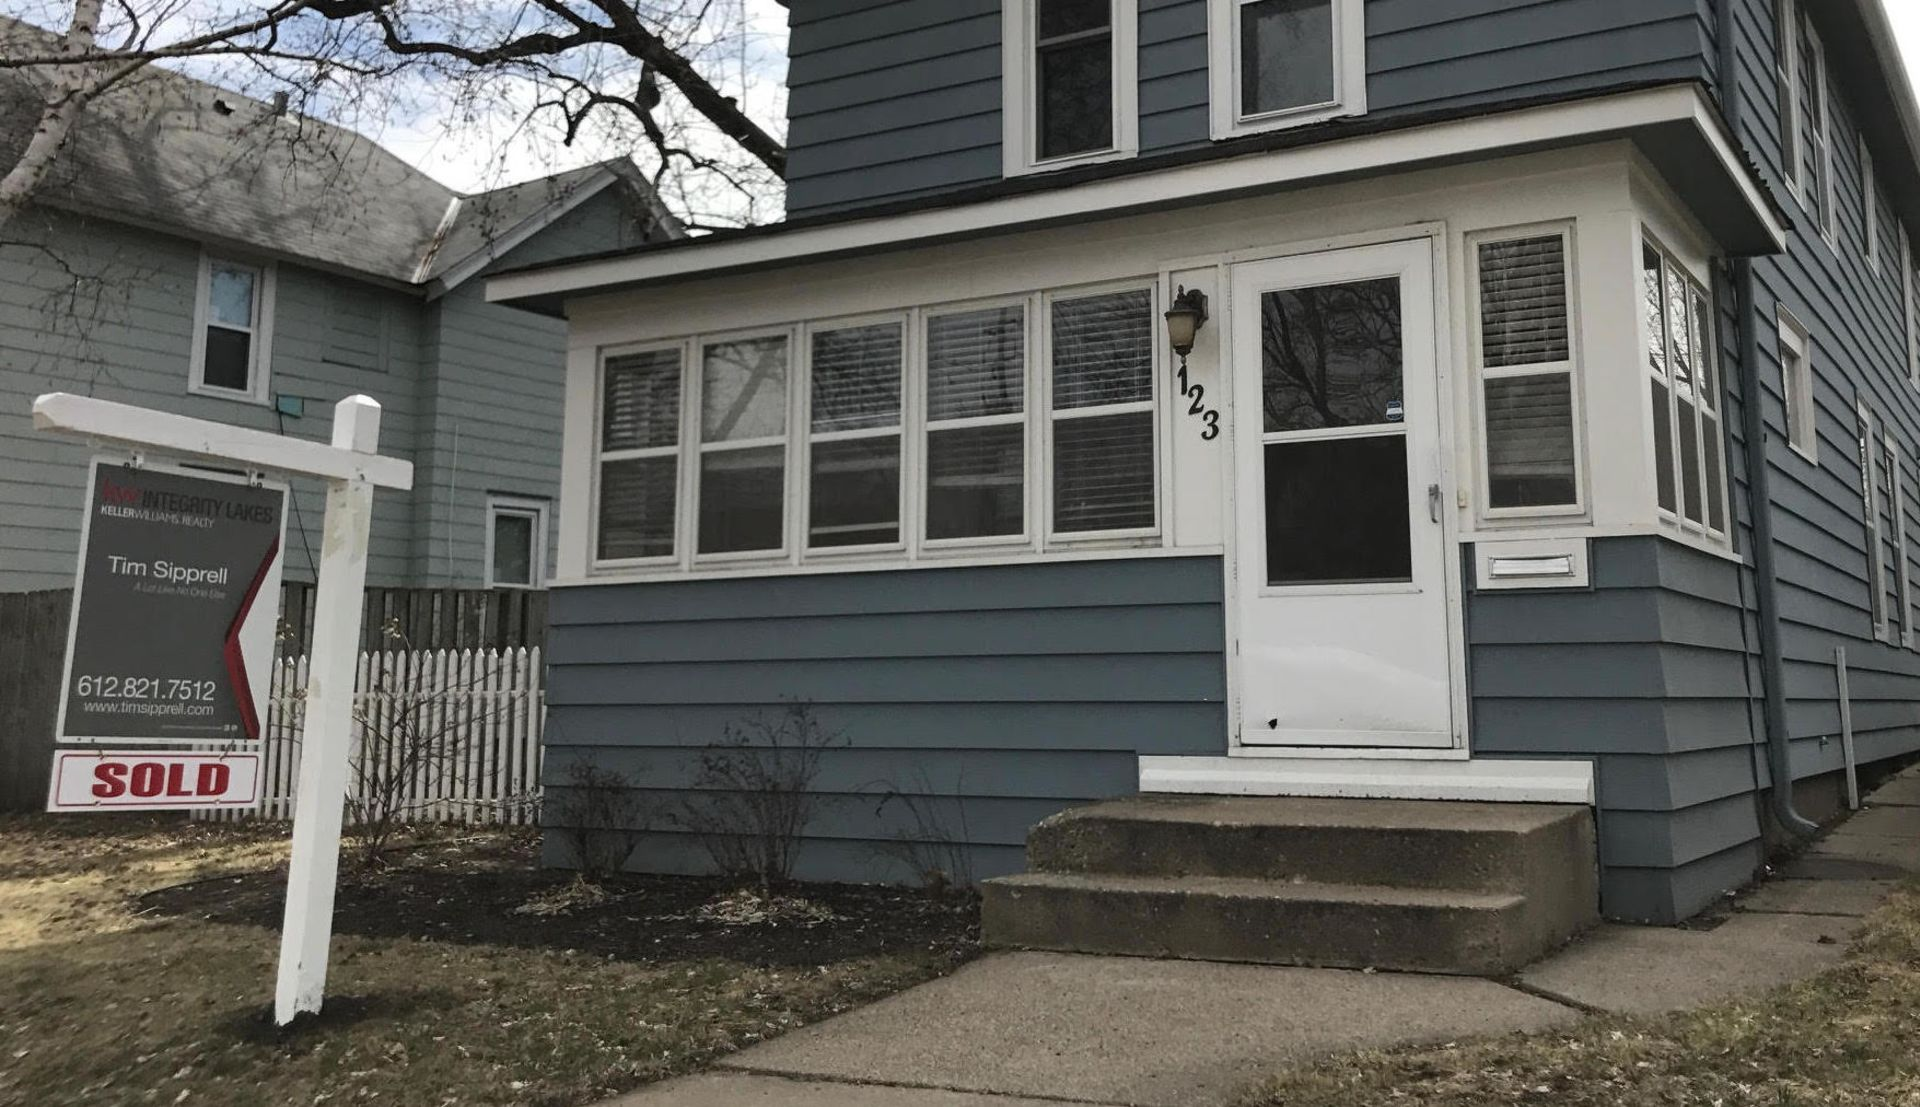 JUST SOLD 123 W. 39th Street Minneapolis-Kingfield Sold Pre-MLS